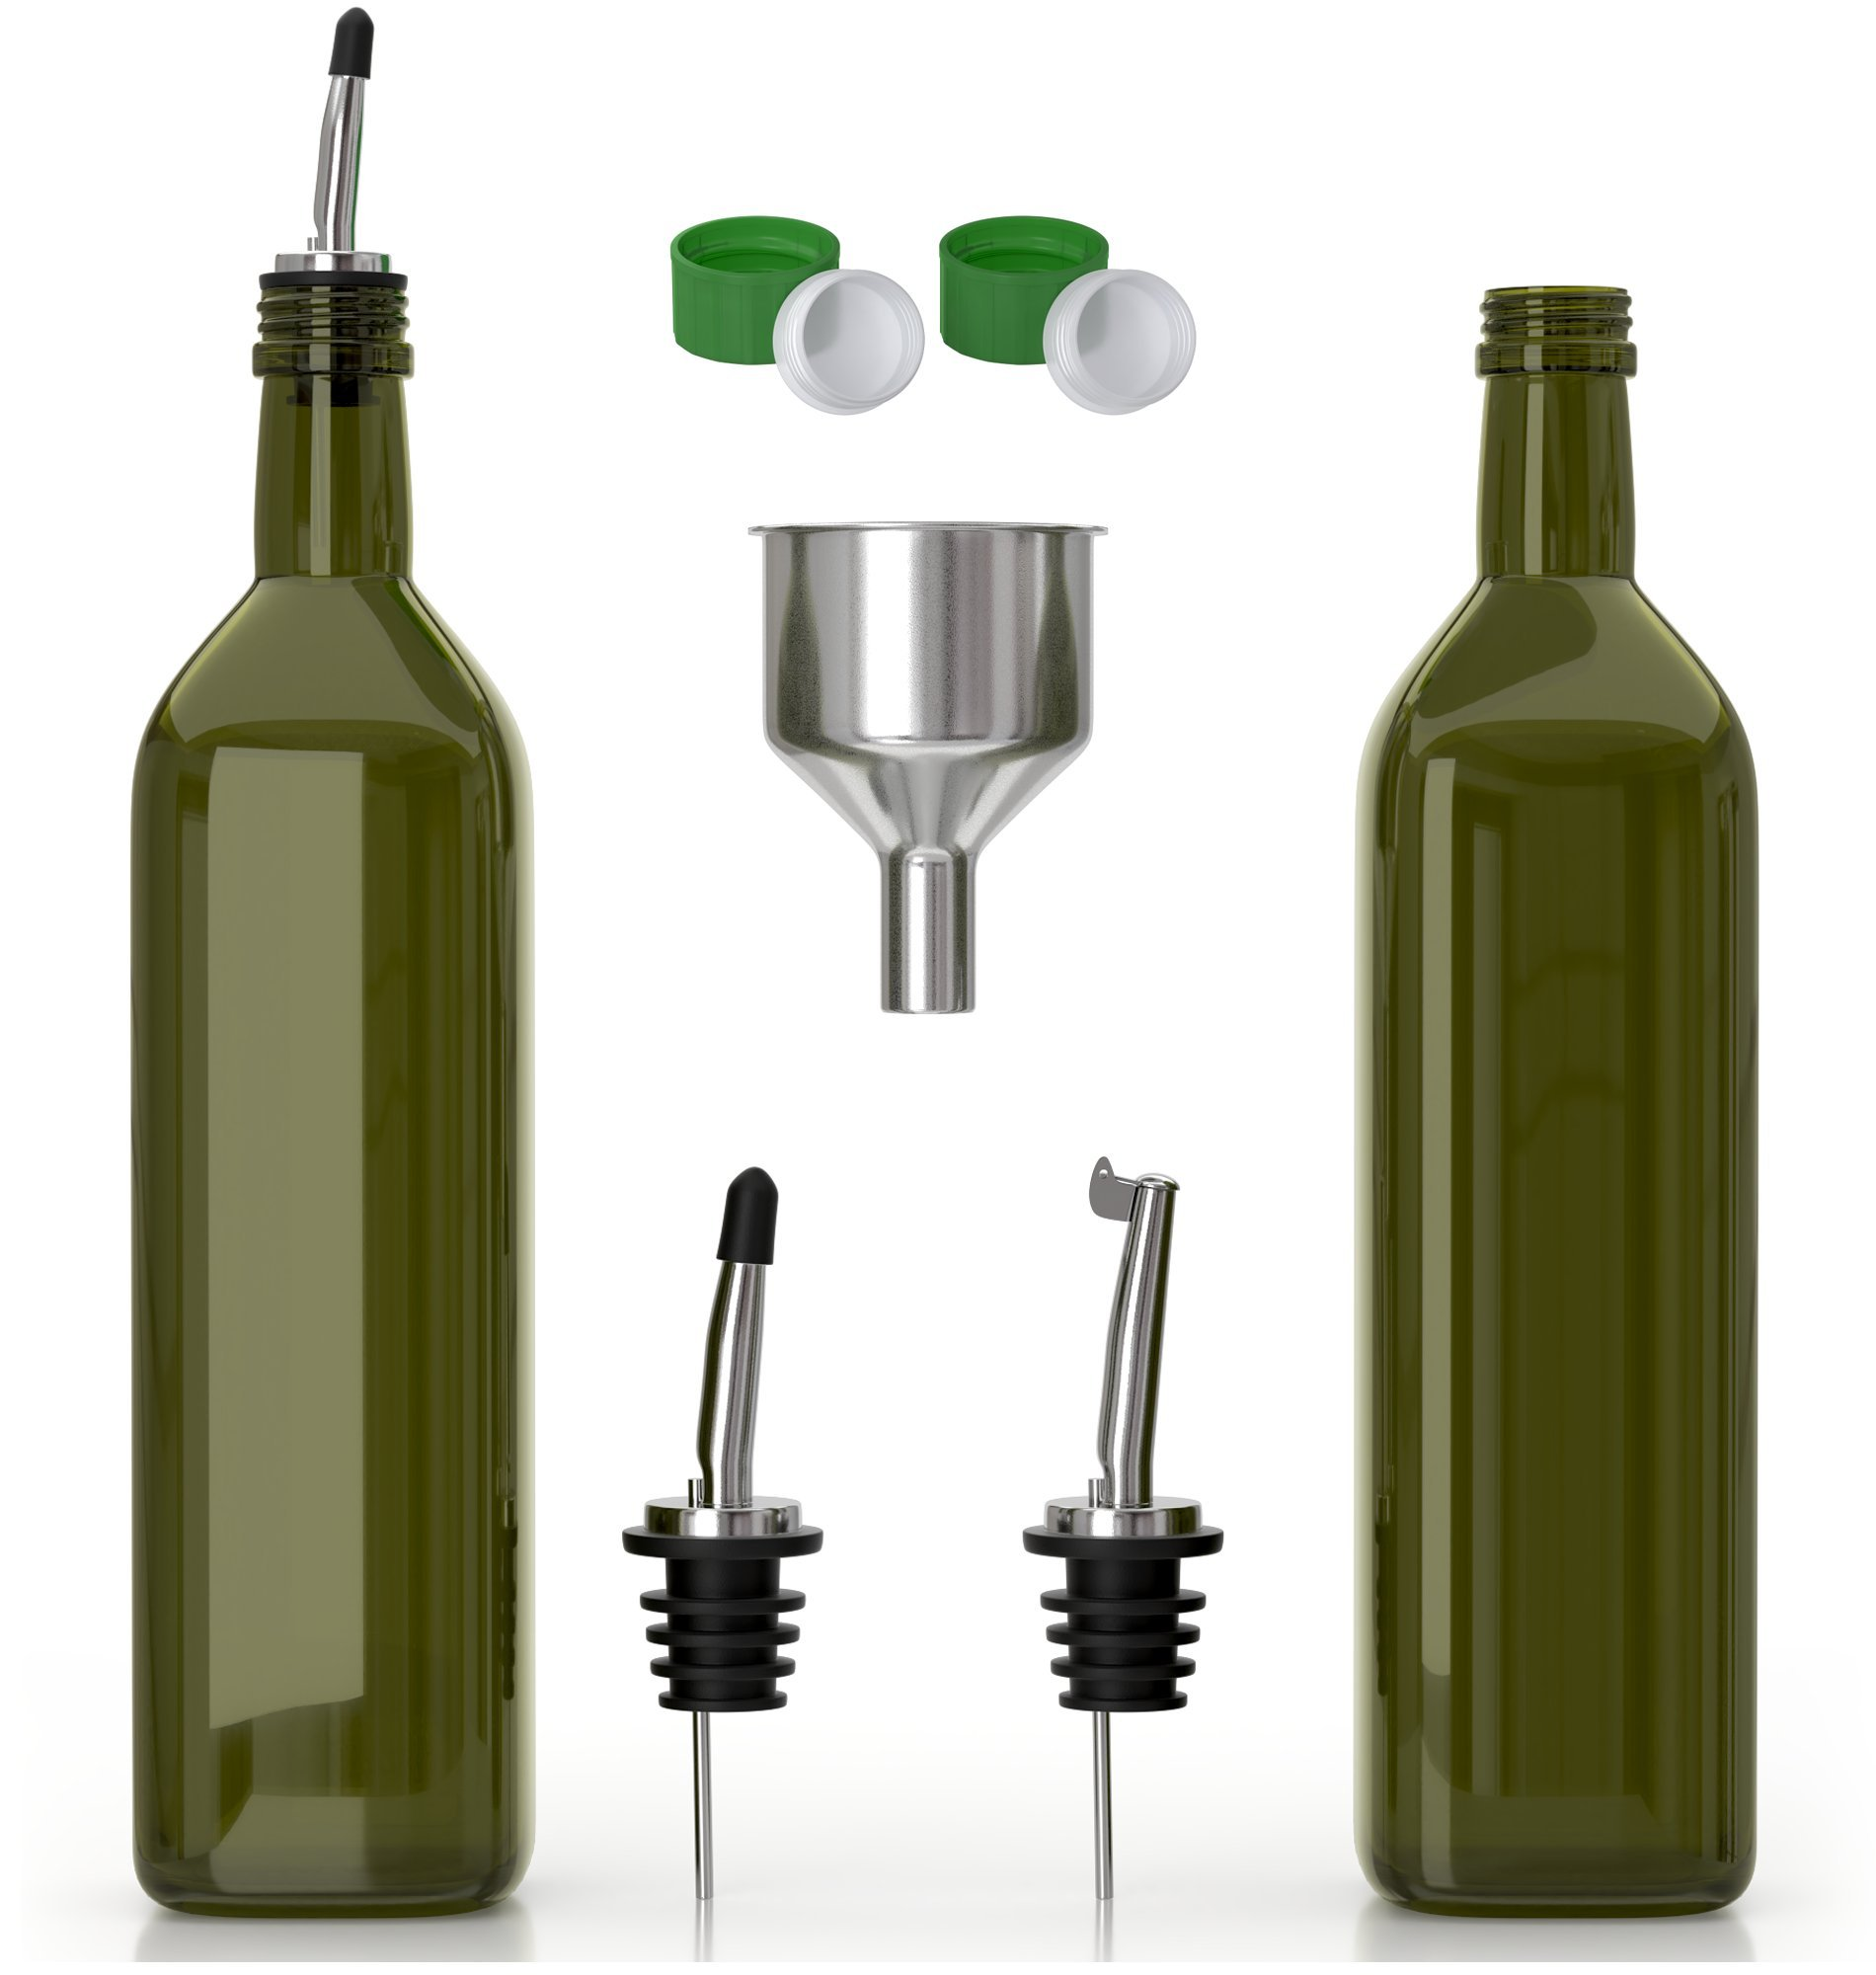 Olive Oil Dispenser -2 Pack of 17 oz. Glass Bottles and Pourer Spout Set for Kitchen - Oil & Vinegar Cruet/Decanter with Funnel - Set of Two: Use One, Have One Ready On Standby